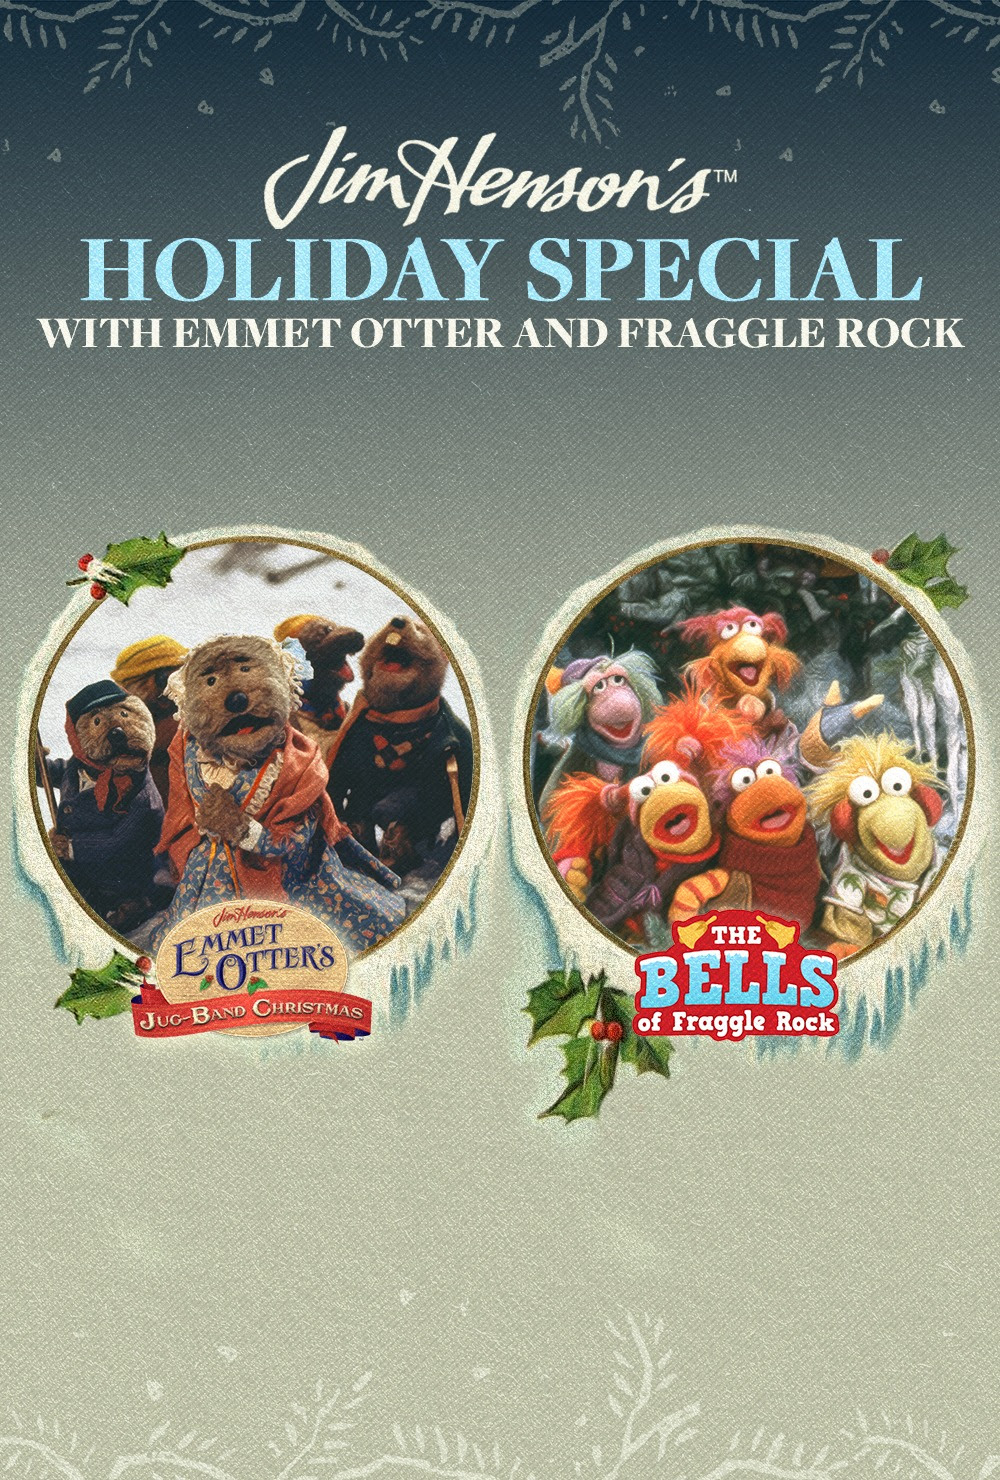 Last chance to see EMMET OTTER'S JUG-BAND CHRISTMAS and THE BELLS OF FRAGGLE ROCK in theaters